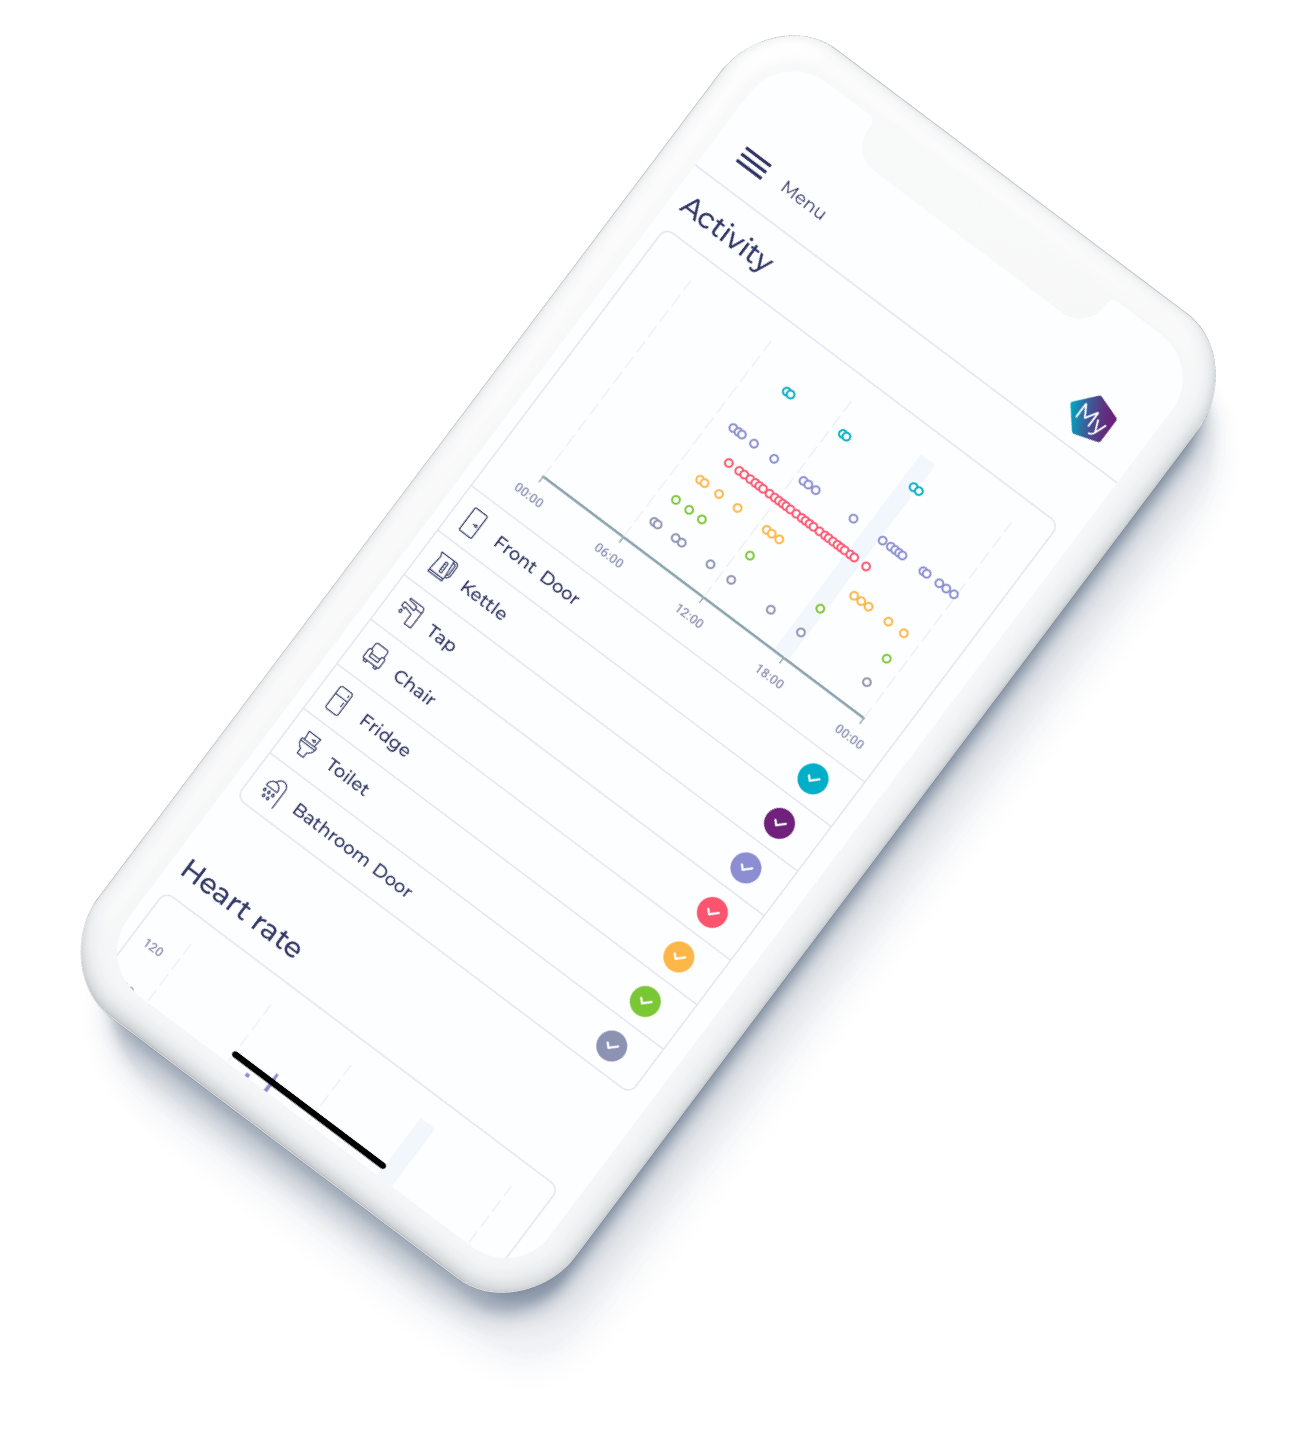 MySense App Sensor Activity Visualisation On A Smartphone